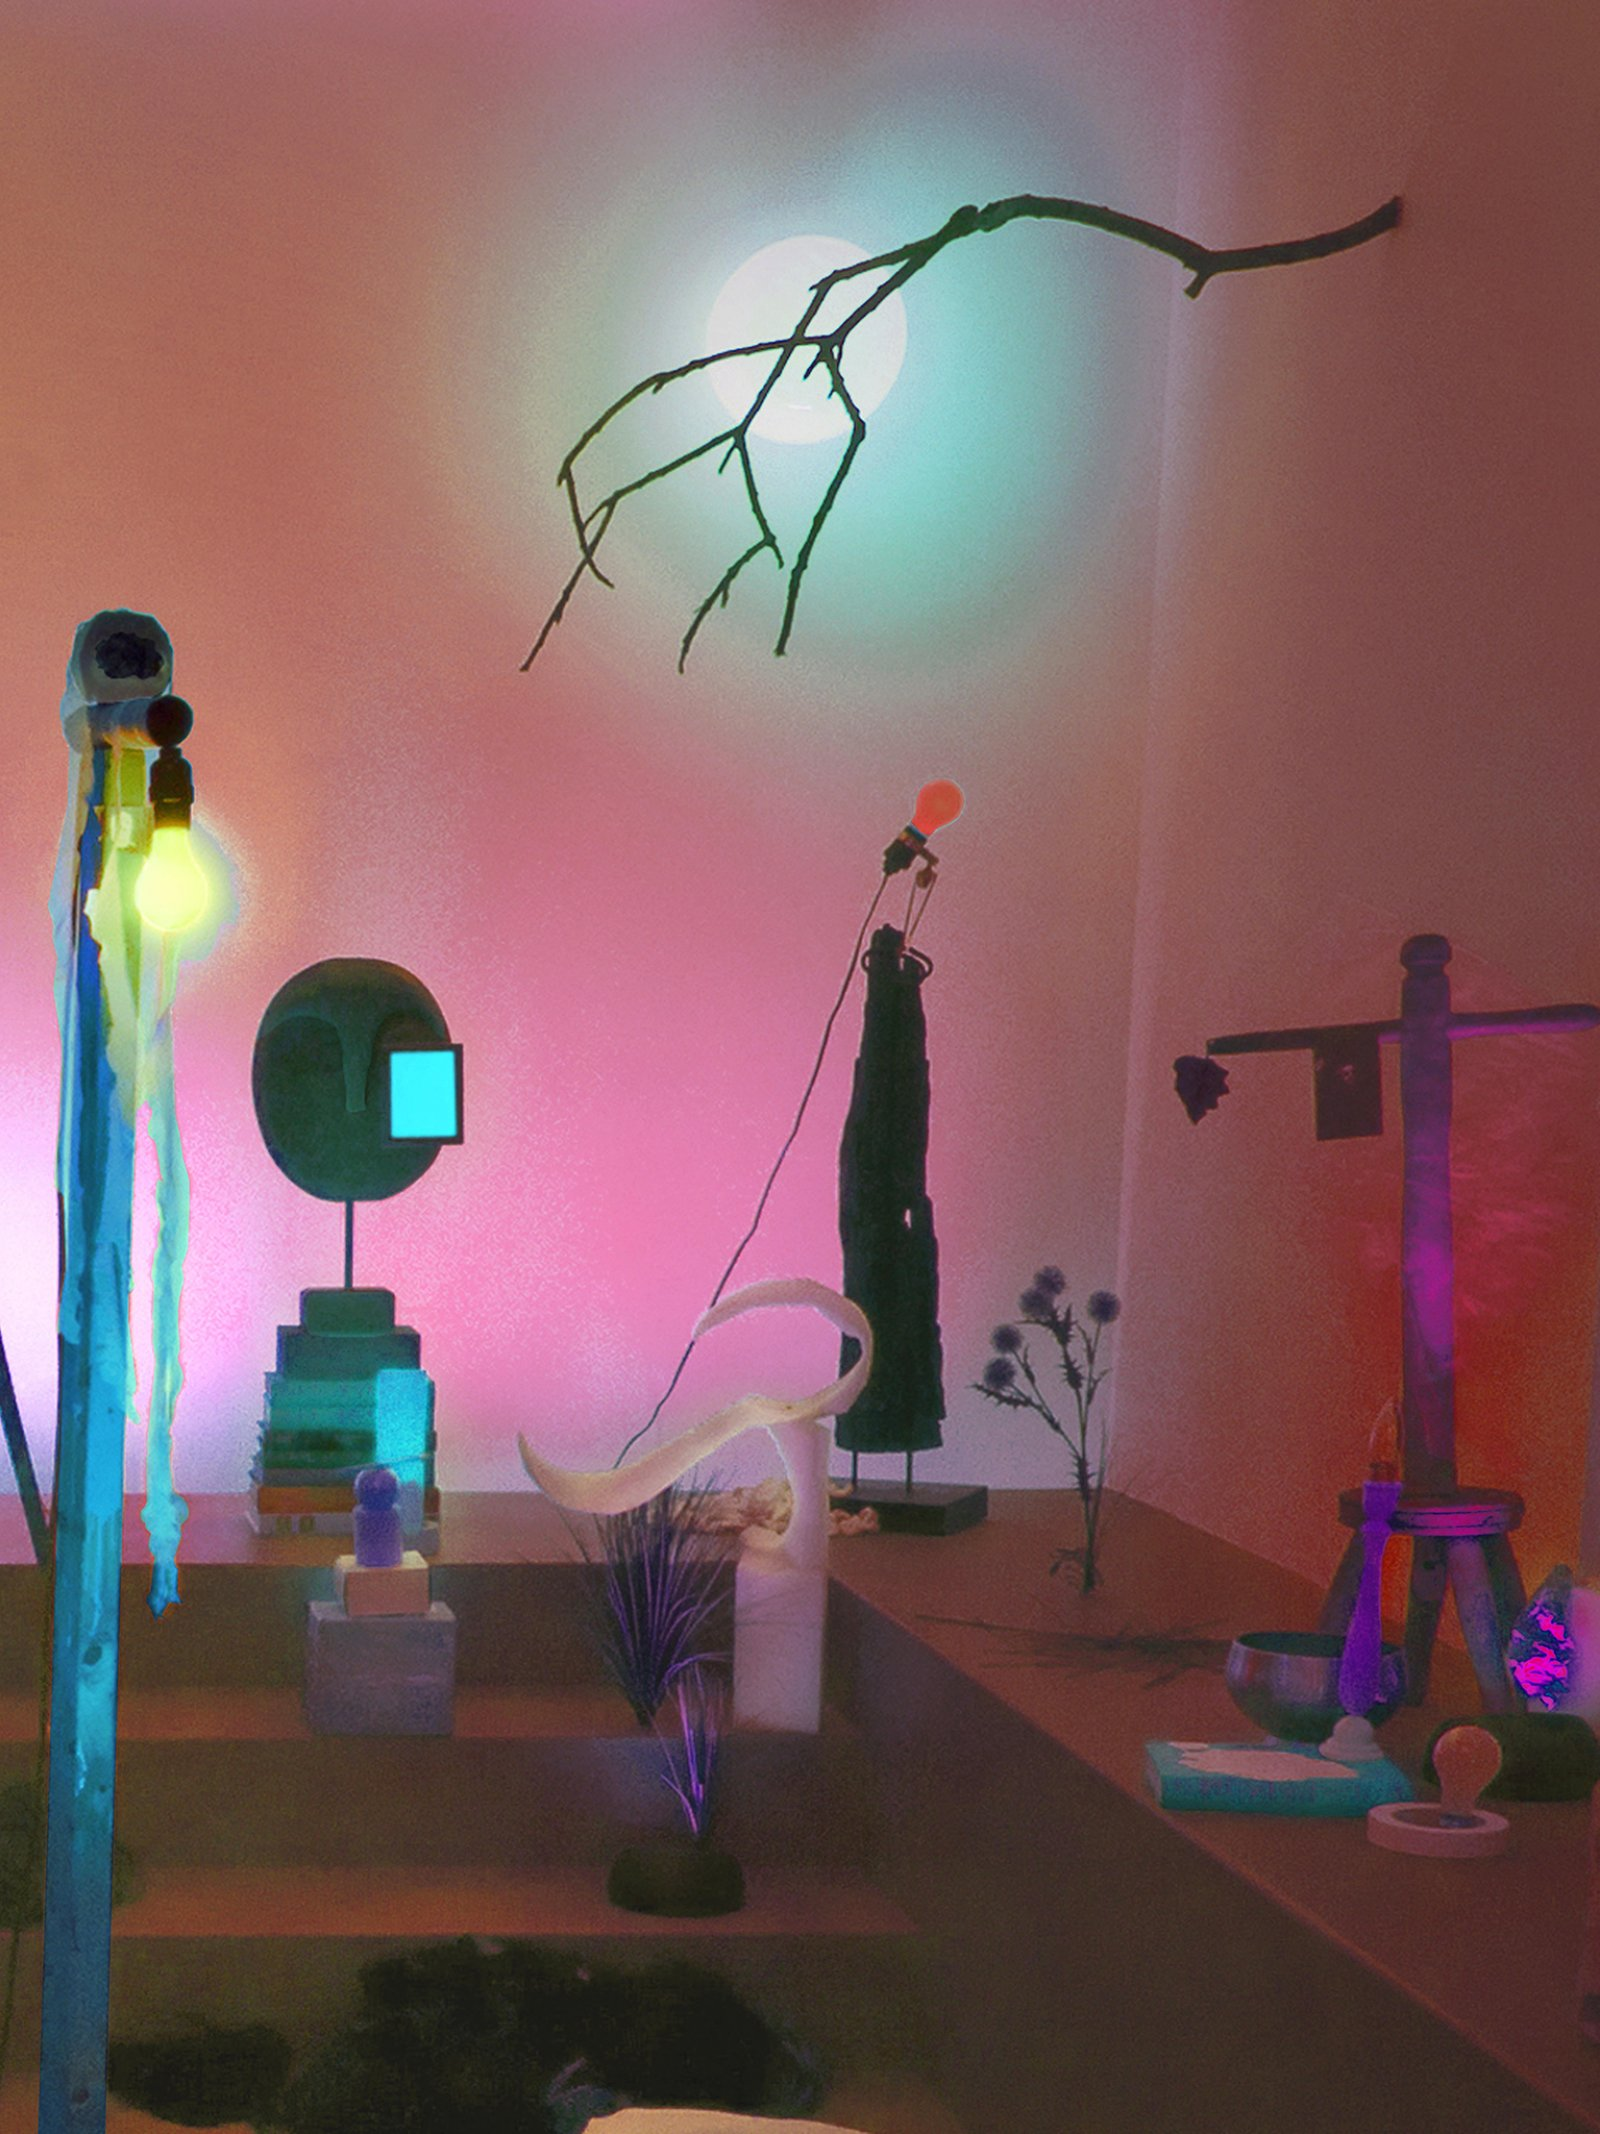 Geoffrey Farmer, Theatre of Cruelty, 2008, props, found objects, fabric, computer-controlled LED lighting system, speakers, framed photographs, dimensions variable